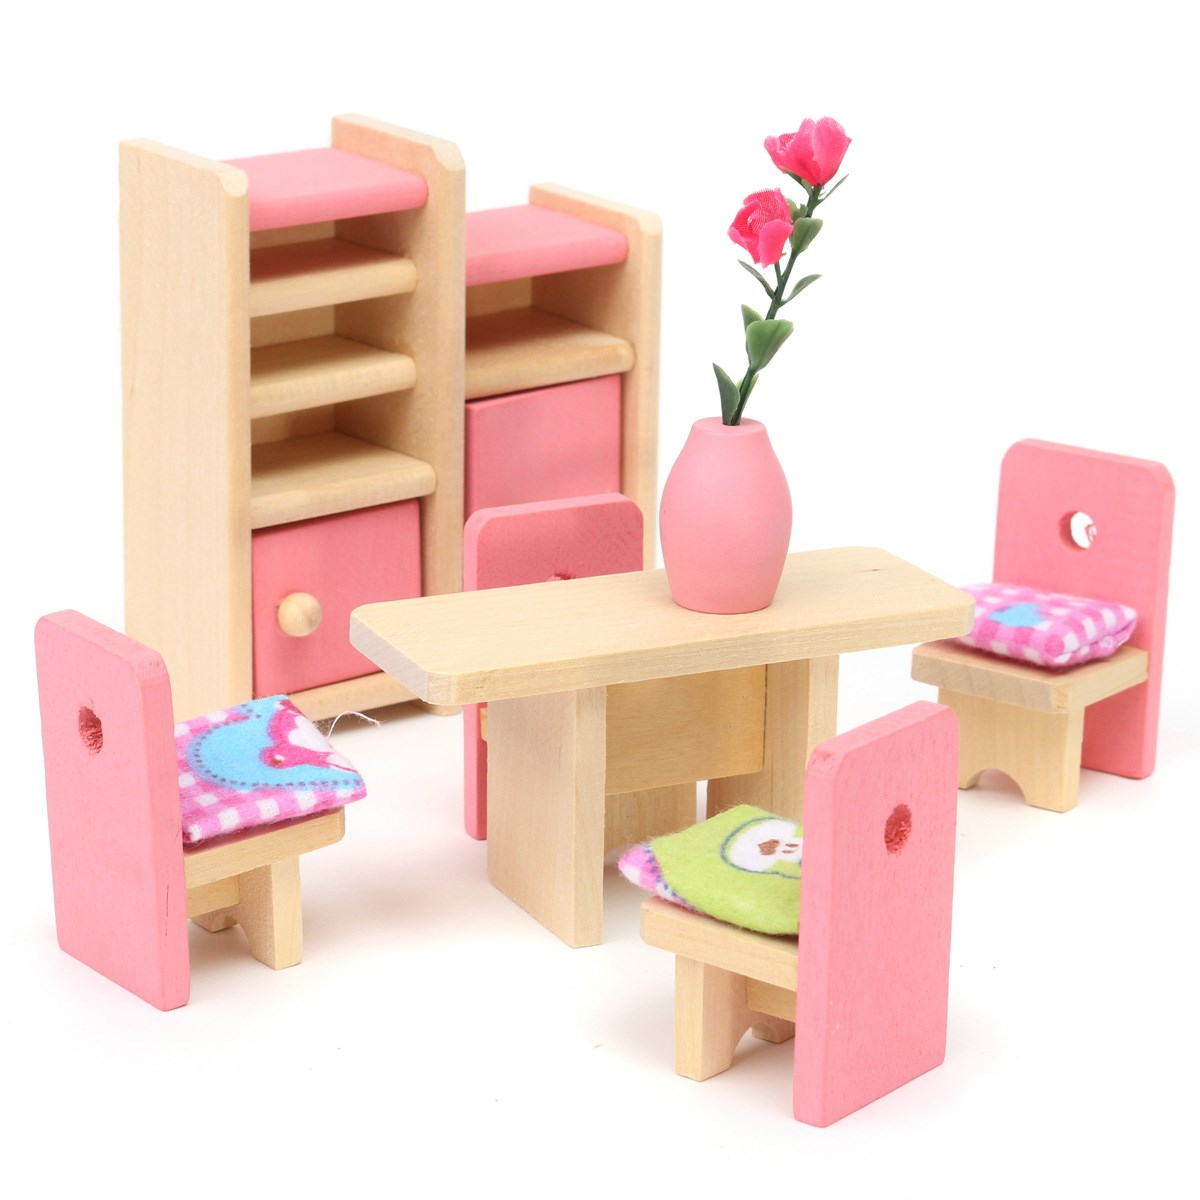 Superior Wooden Delicate Dollhouse Furniture Toys Miniature For Kids Children  Pretend Play 6 Room Set/4 Dolls Toys In Furniture Toys From Toys U0026 Hobbies  On ...